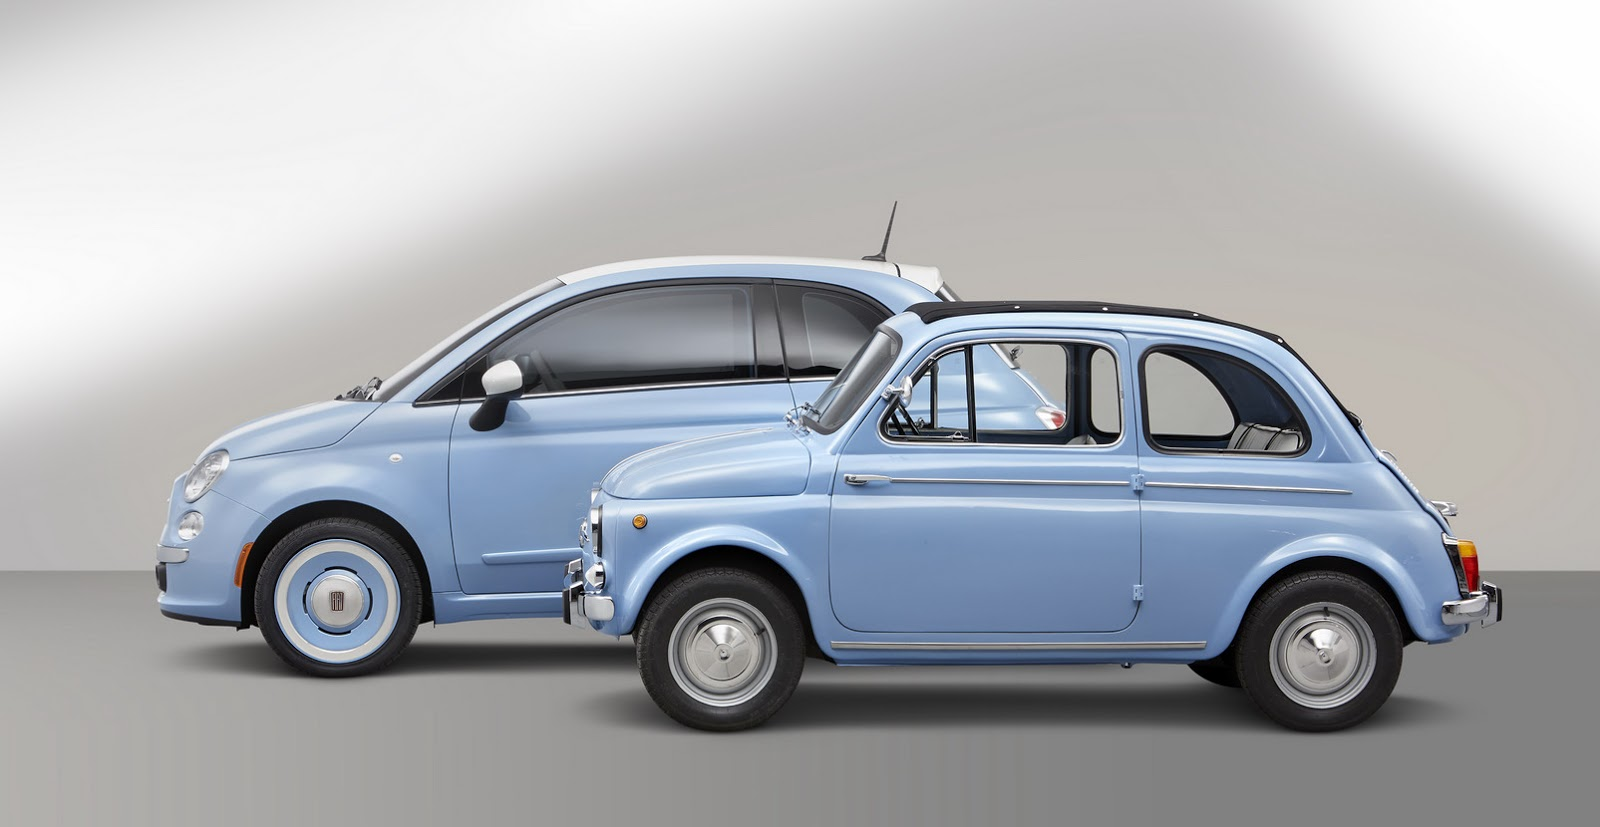 fiat 500 cabrio 1957 edition is retro styling done right art of gears. Black Bedroom Furniture Sets. Home Design Ideas